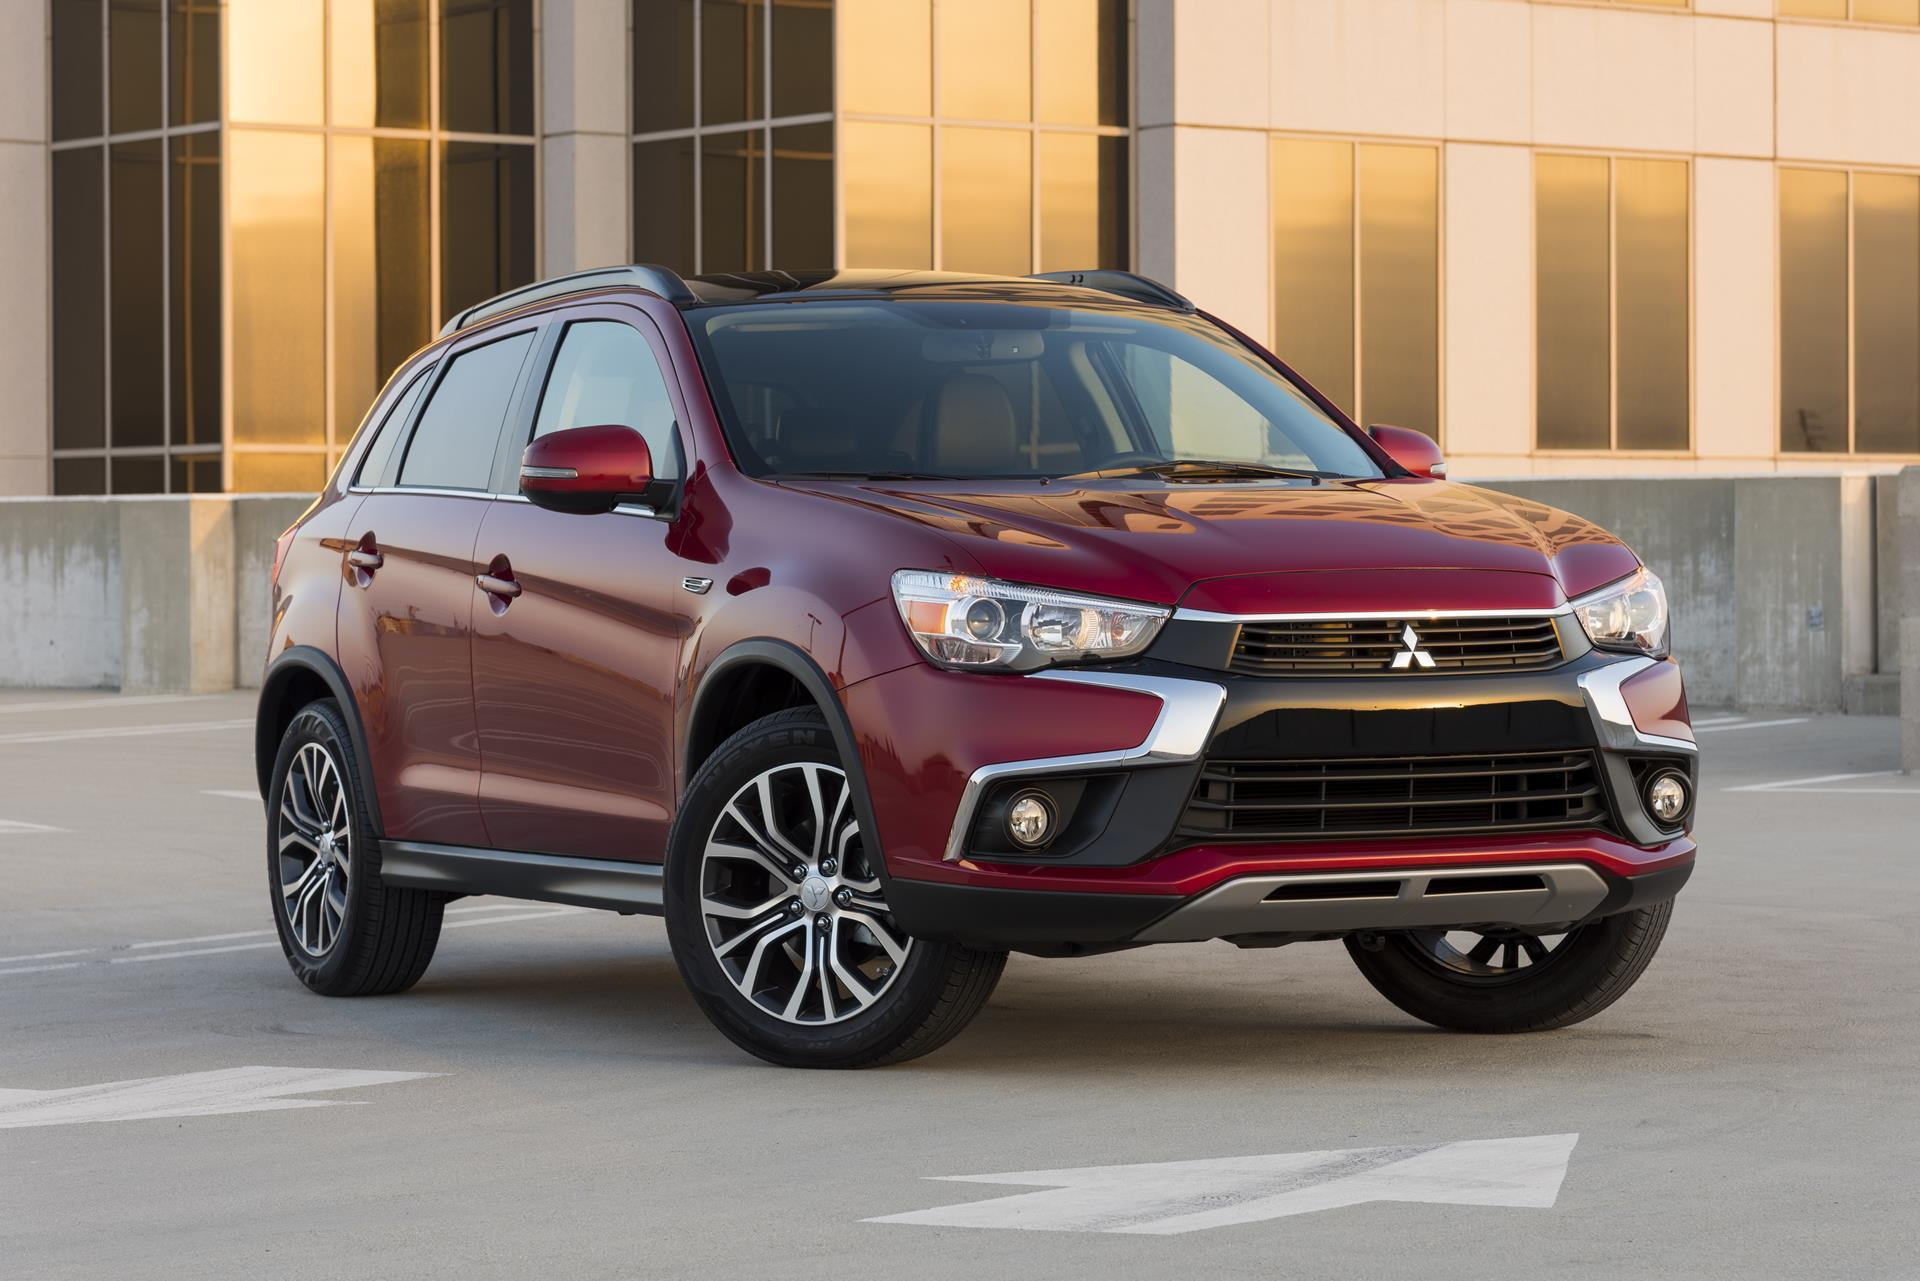 2017 Mitsubishi Outlander Sport News and Information